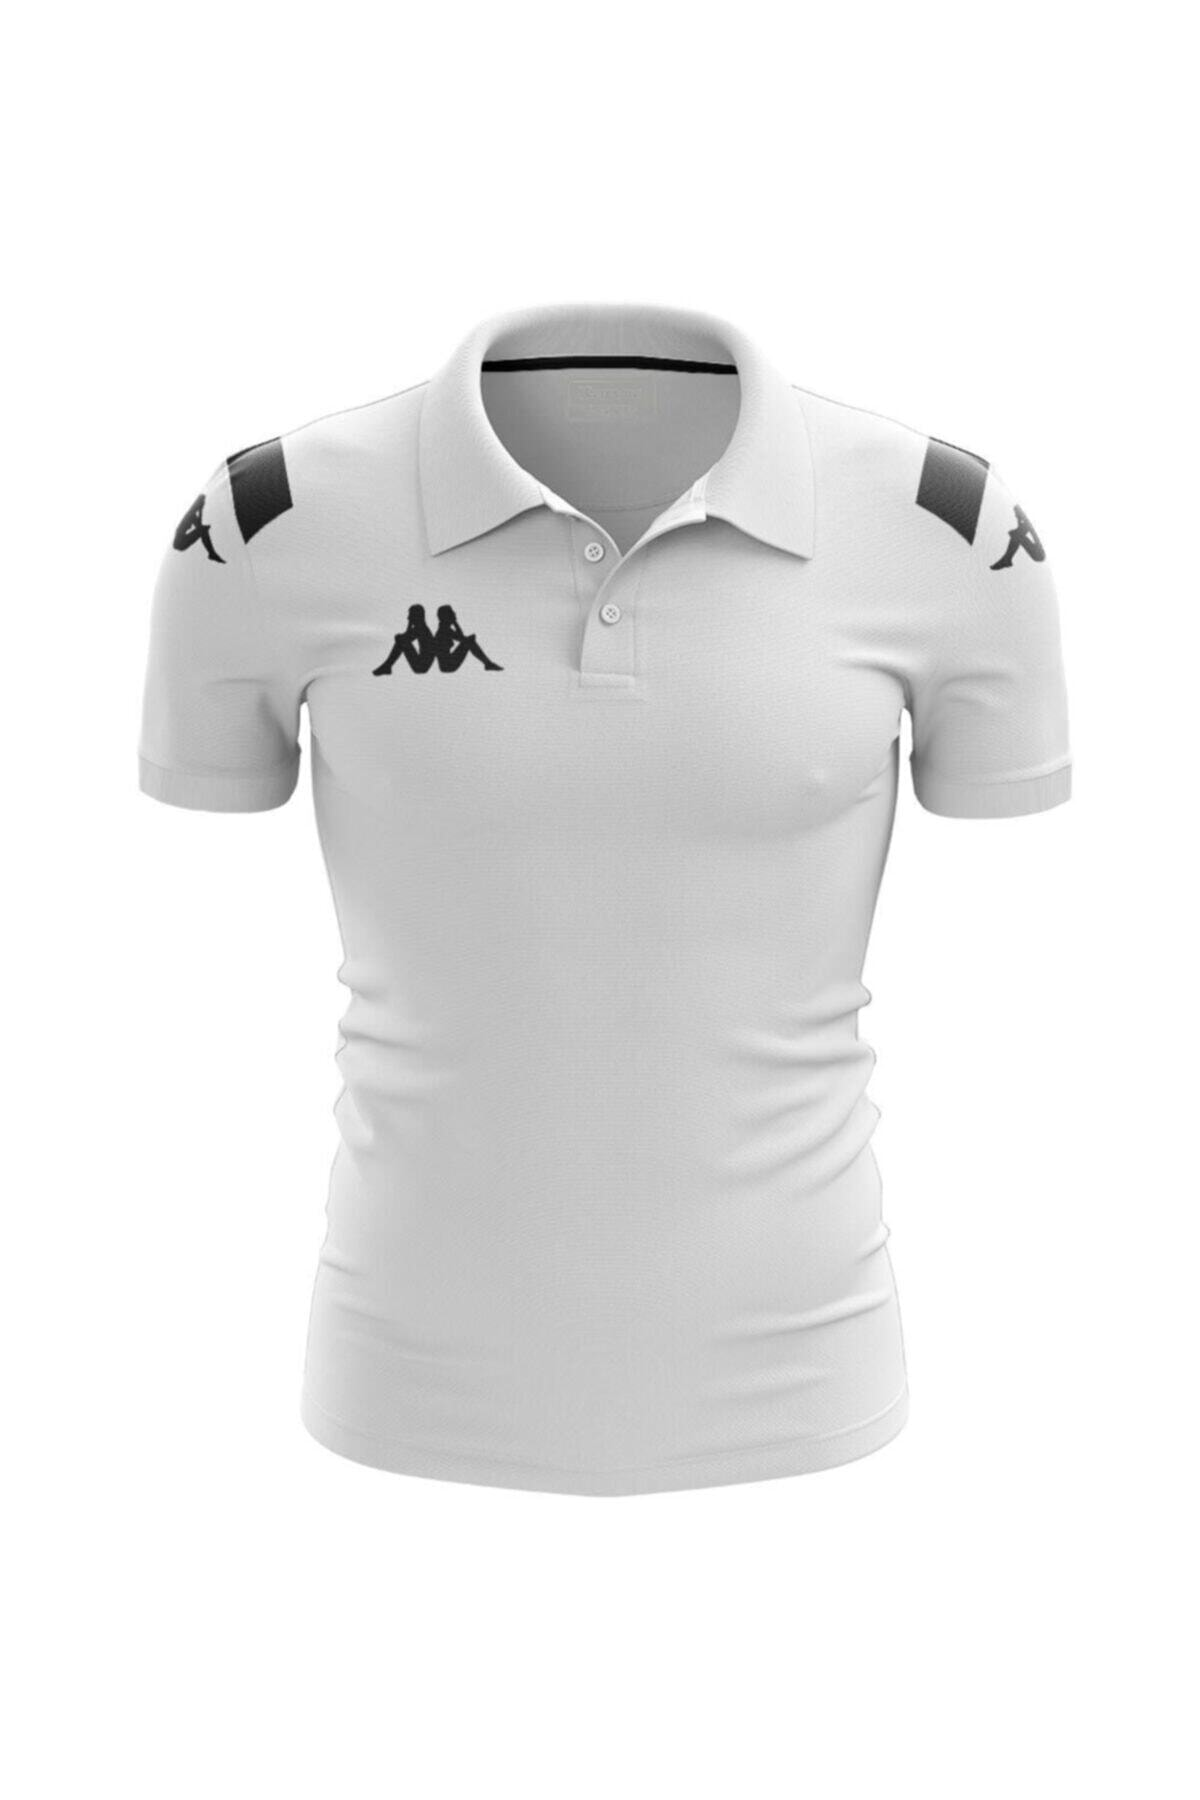 Kappa 304j710 Player Kamp Polo T-shirt Abıang4 _ Beyaz M 1